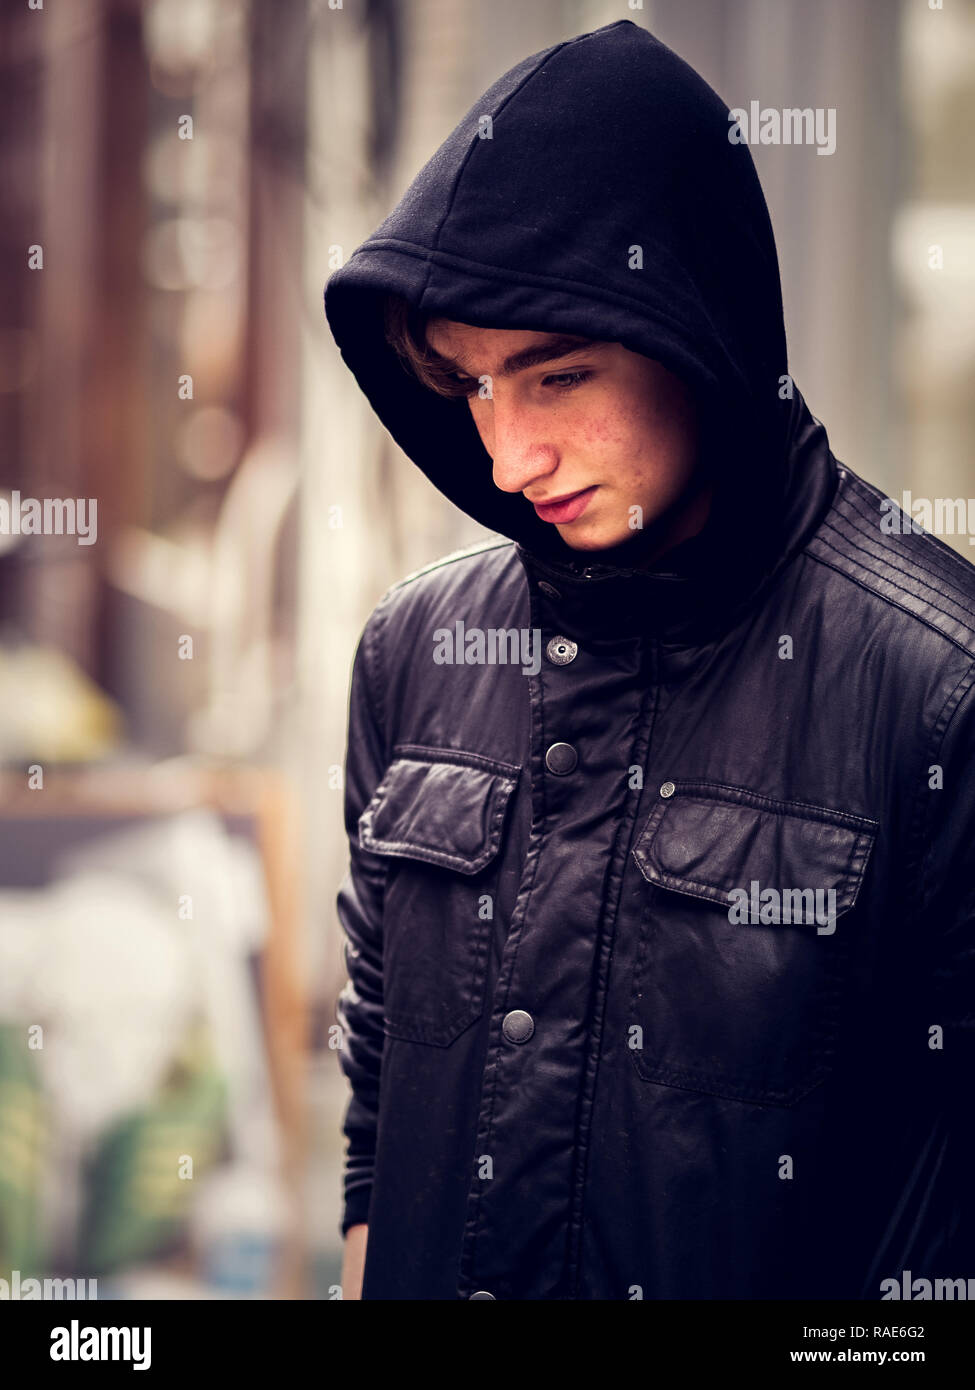 Close up young boy in black hoody with soft background - Stock Image